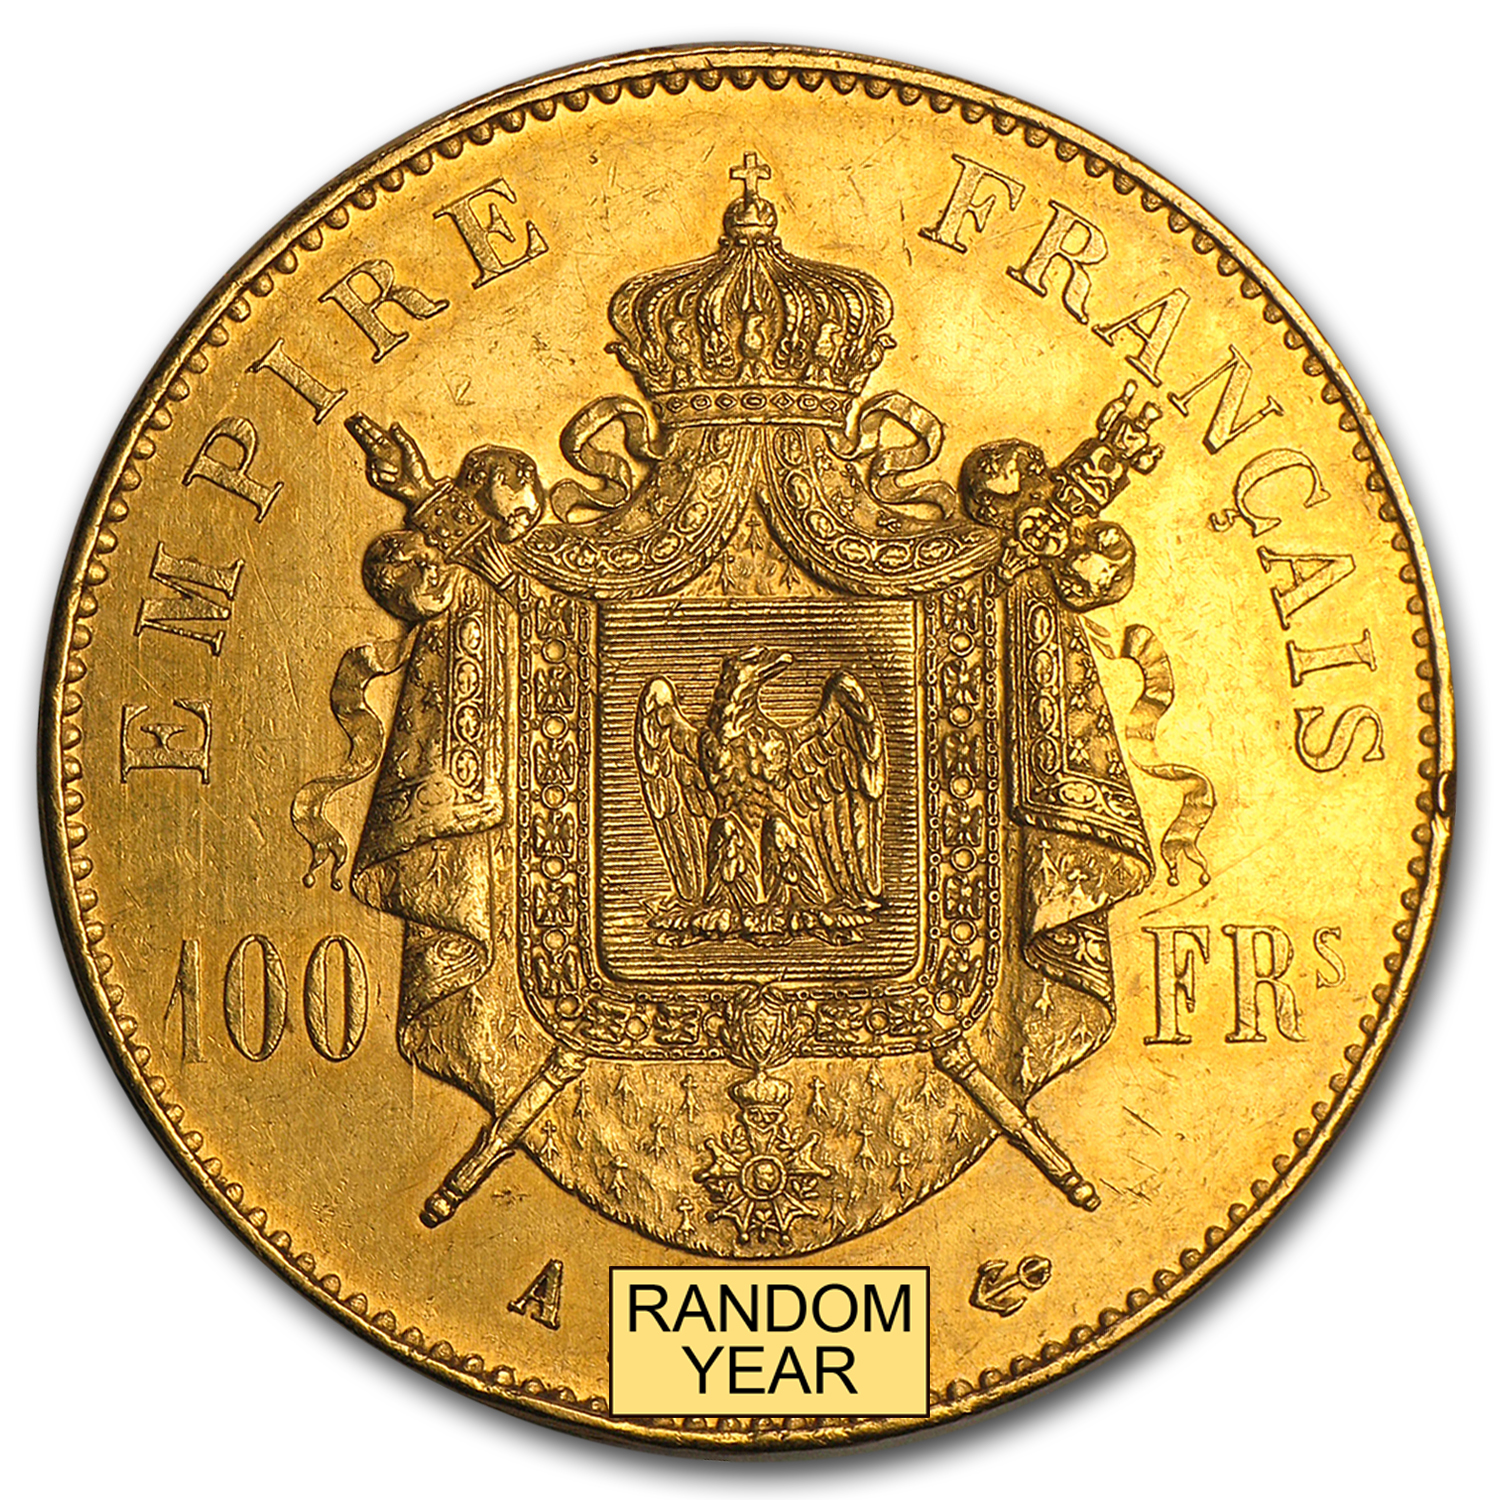 1855-1859 France Gold 100 Francs Napoleon III AU